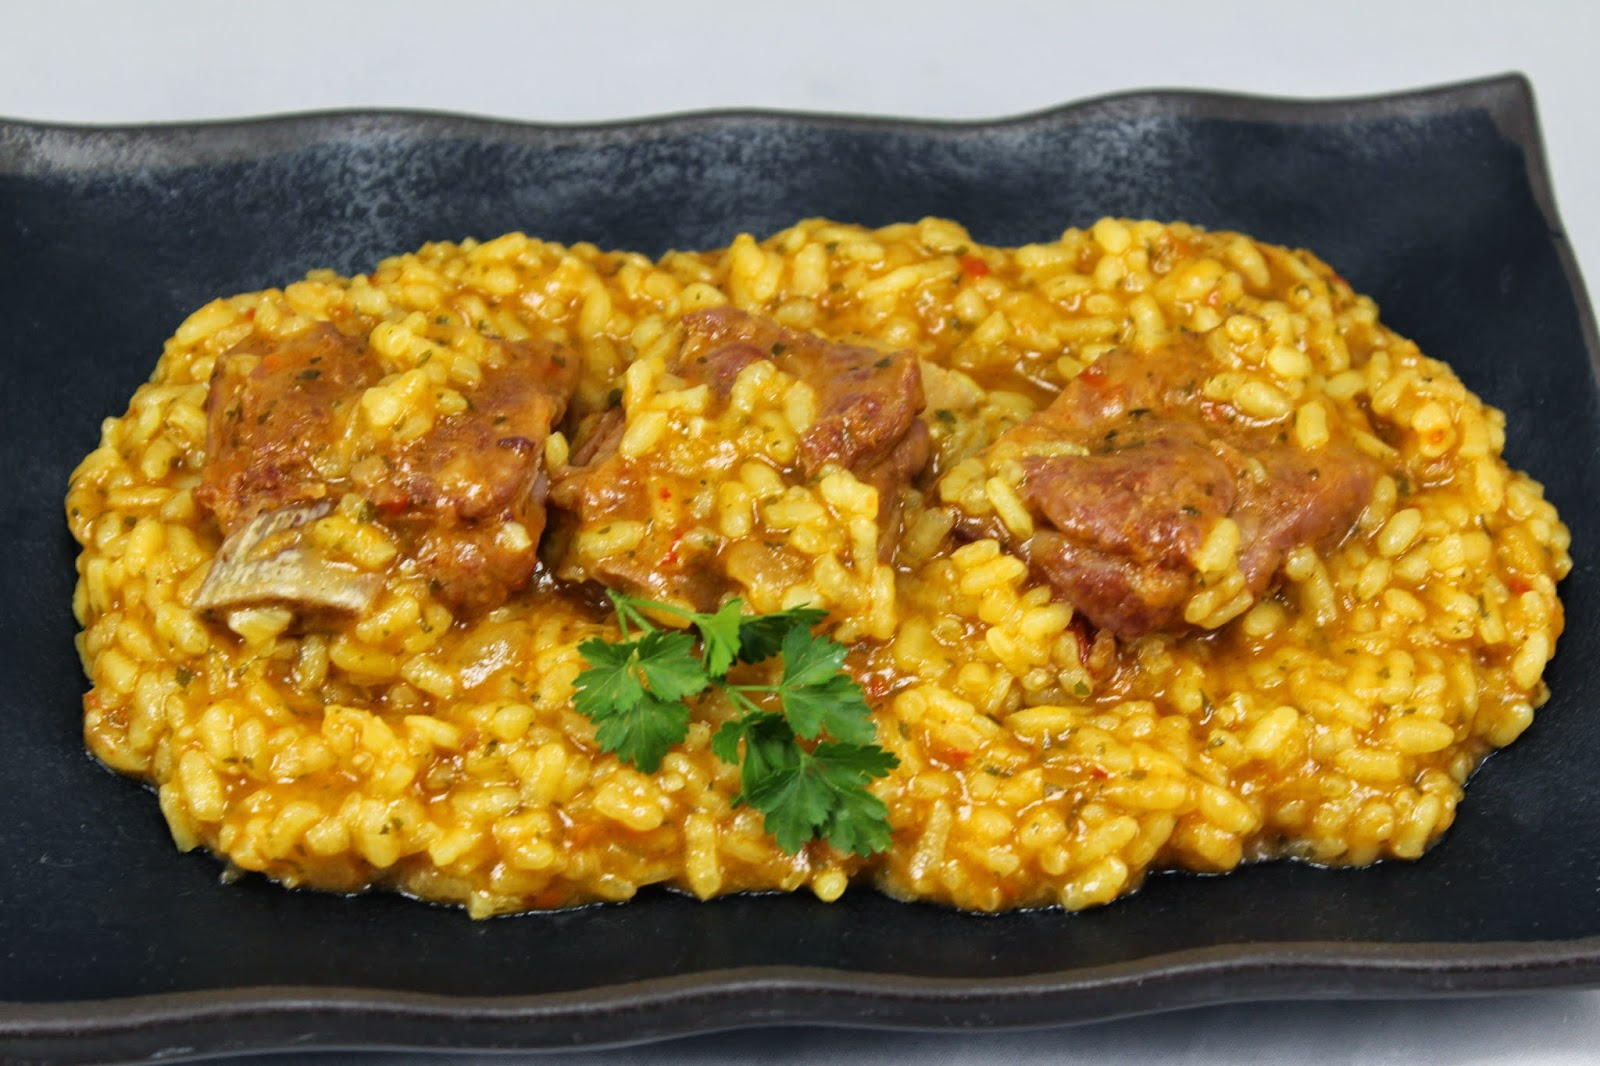 Arroz meloso con costillas con Thermomix